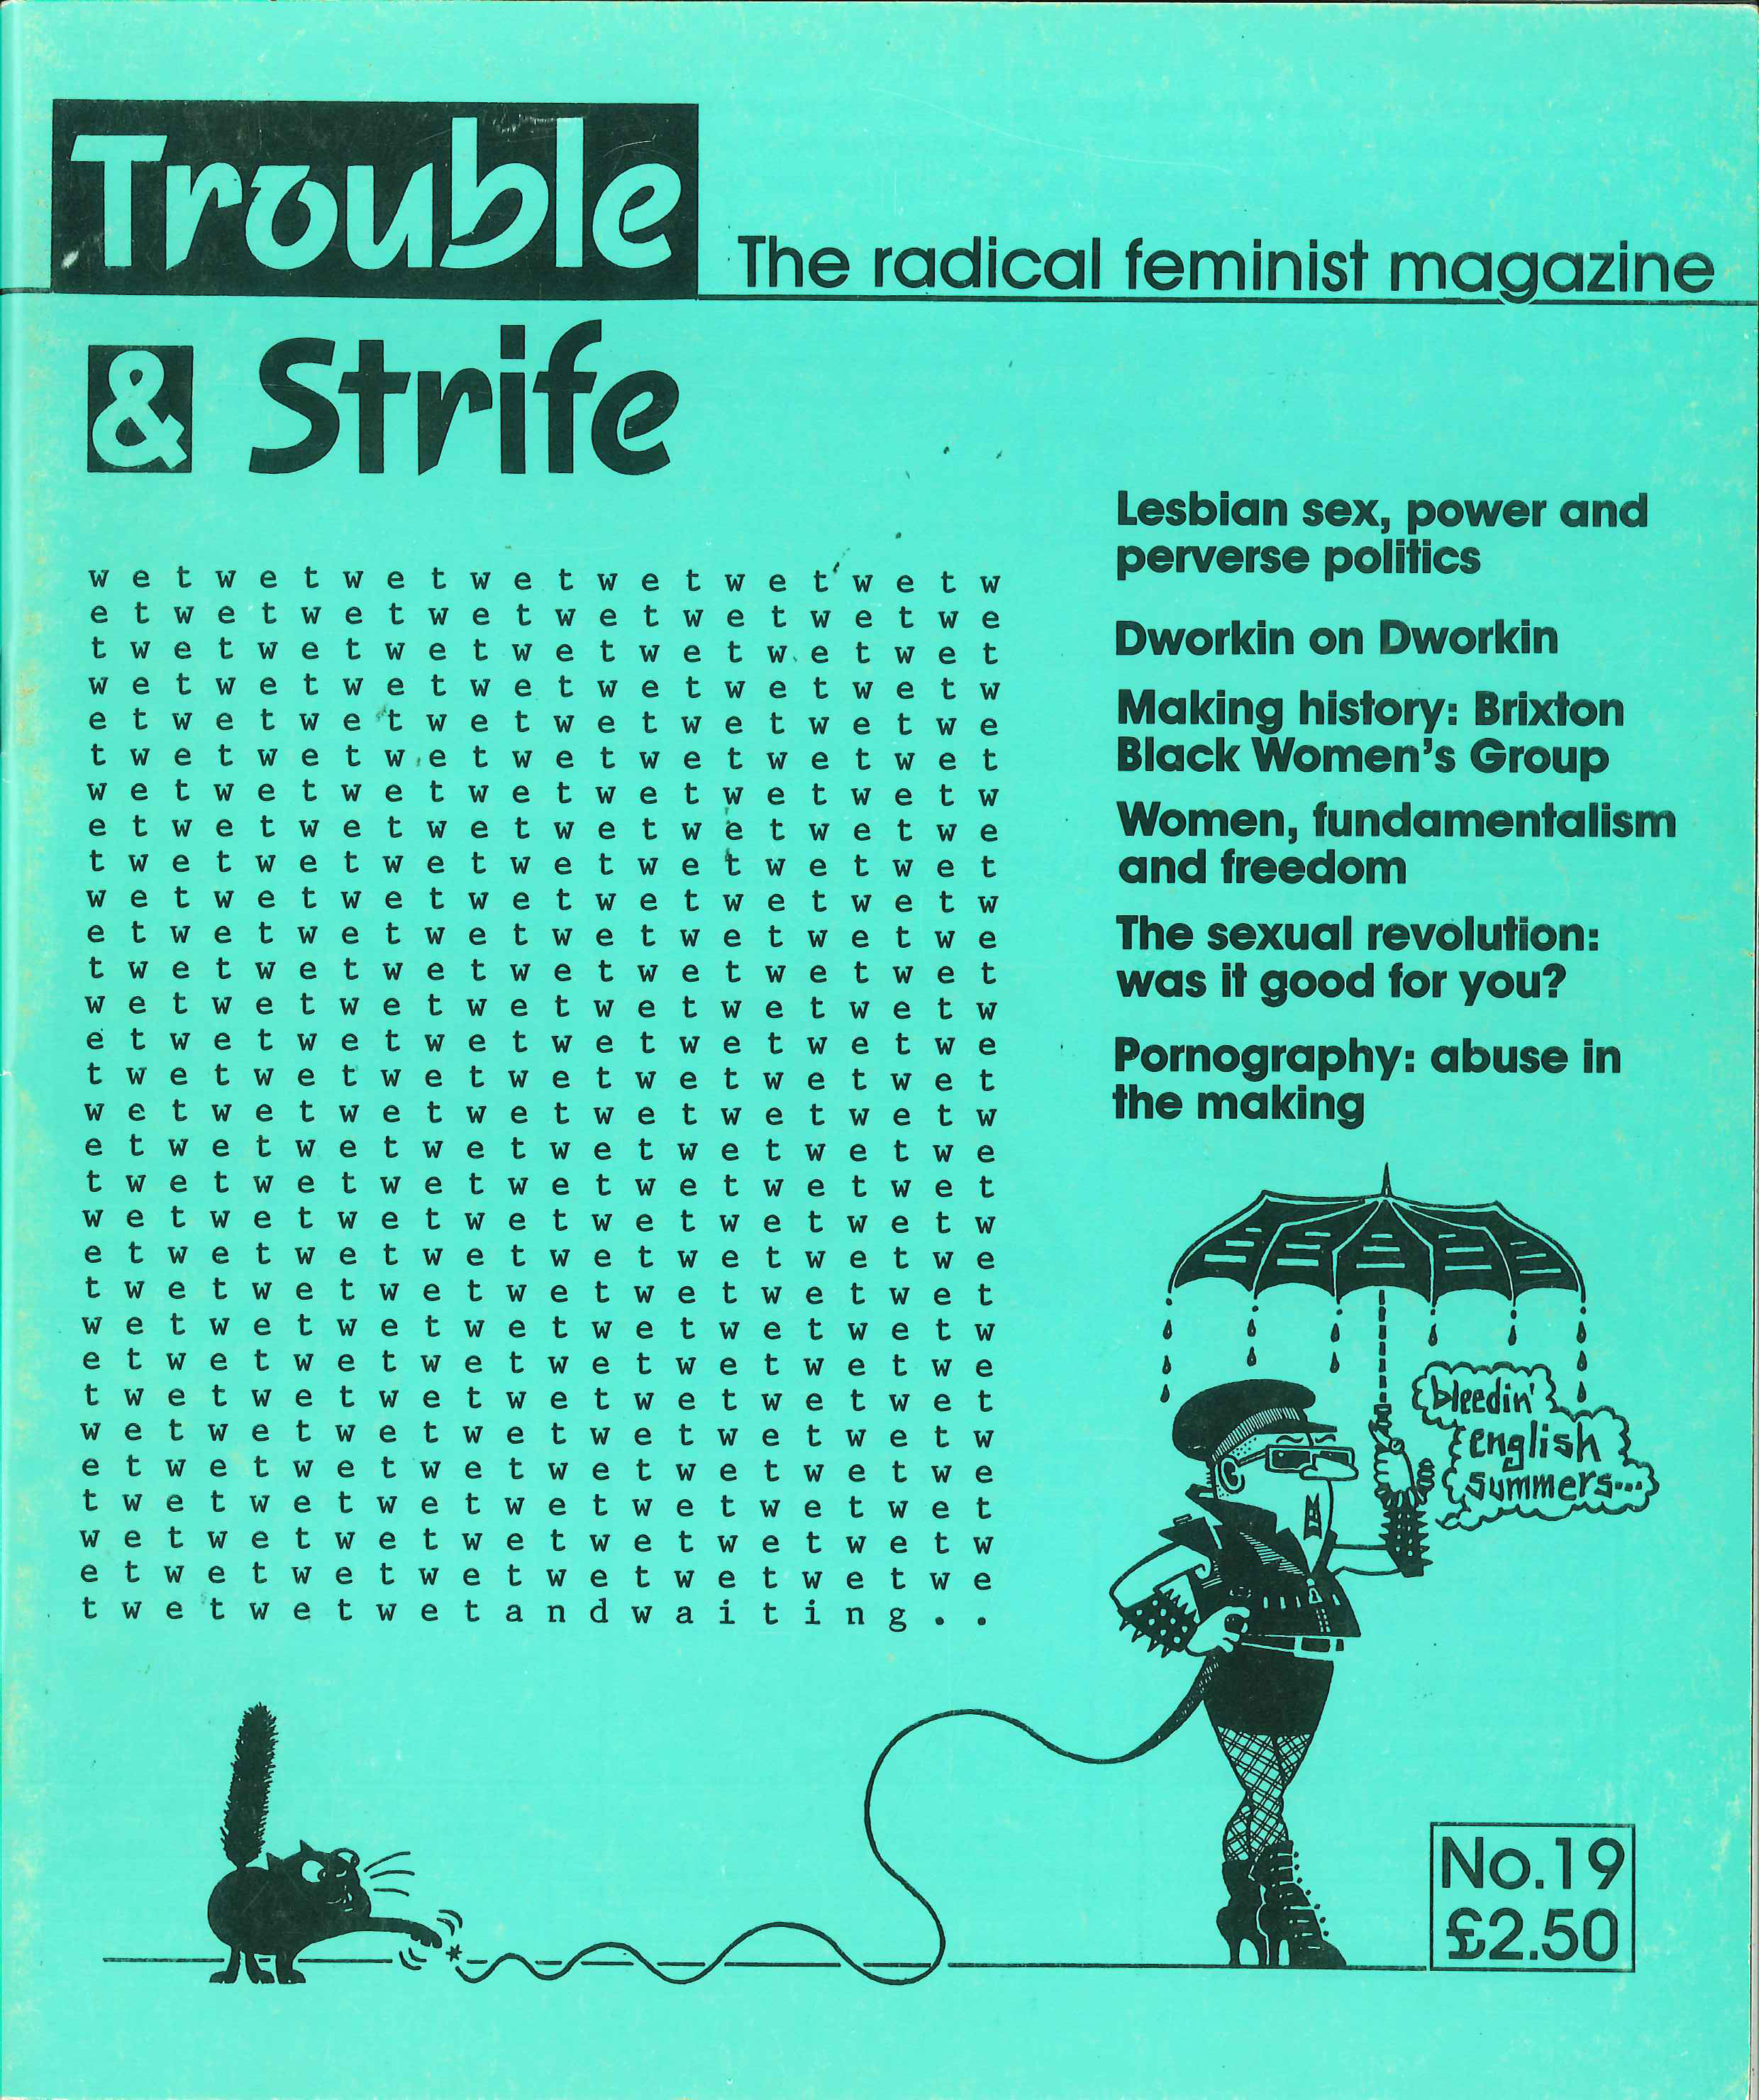 Scan of cover of issue 19